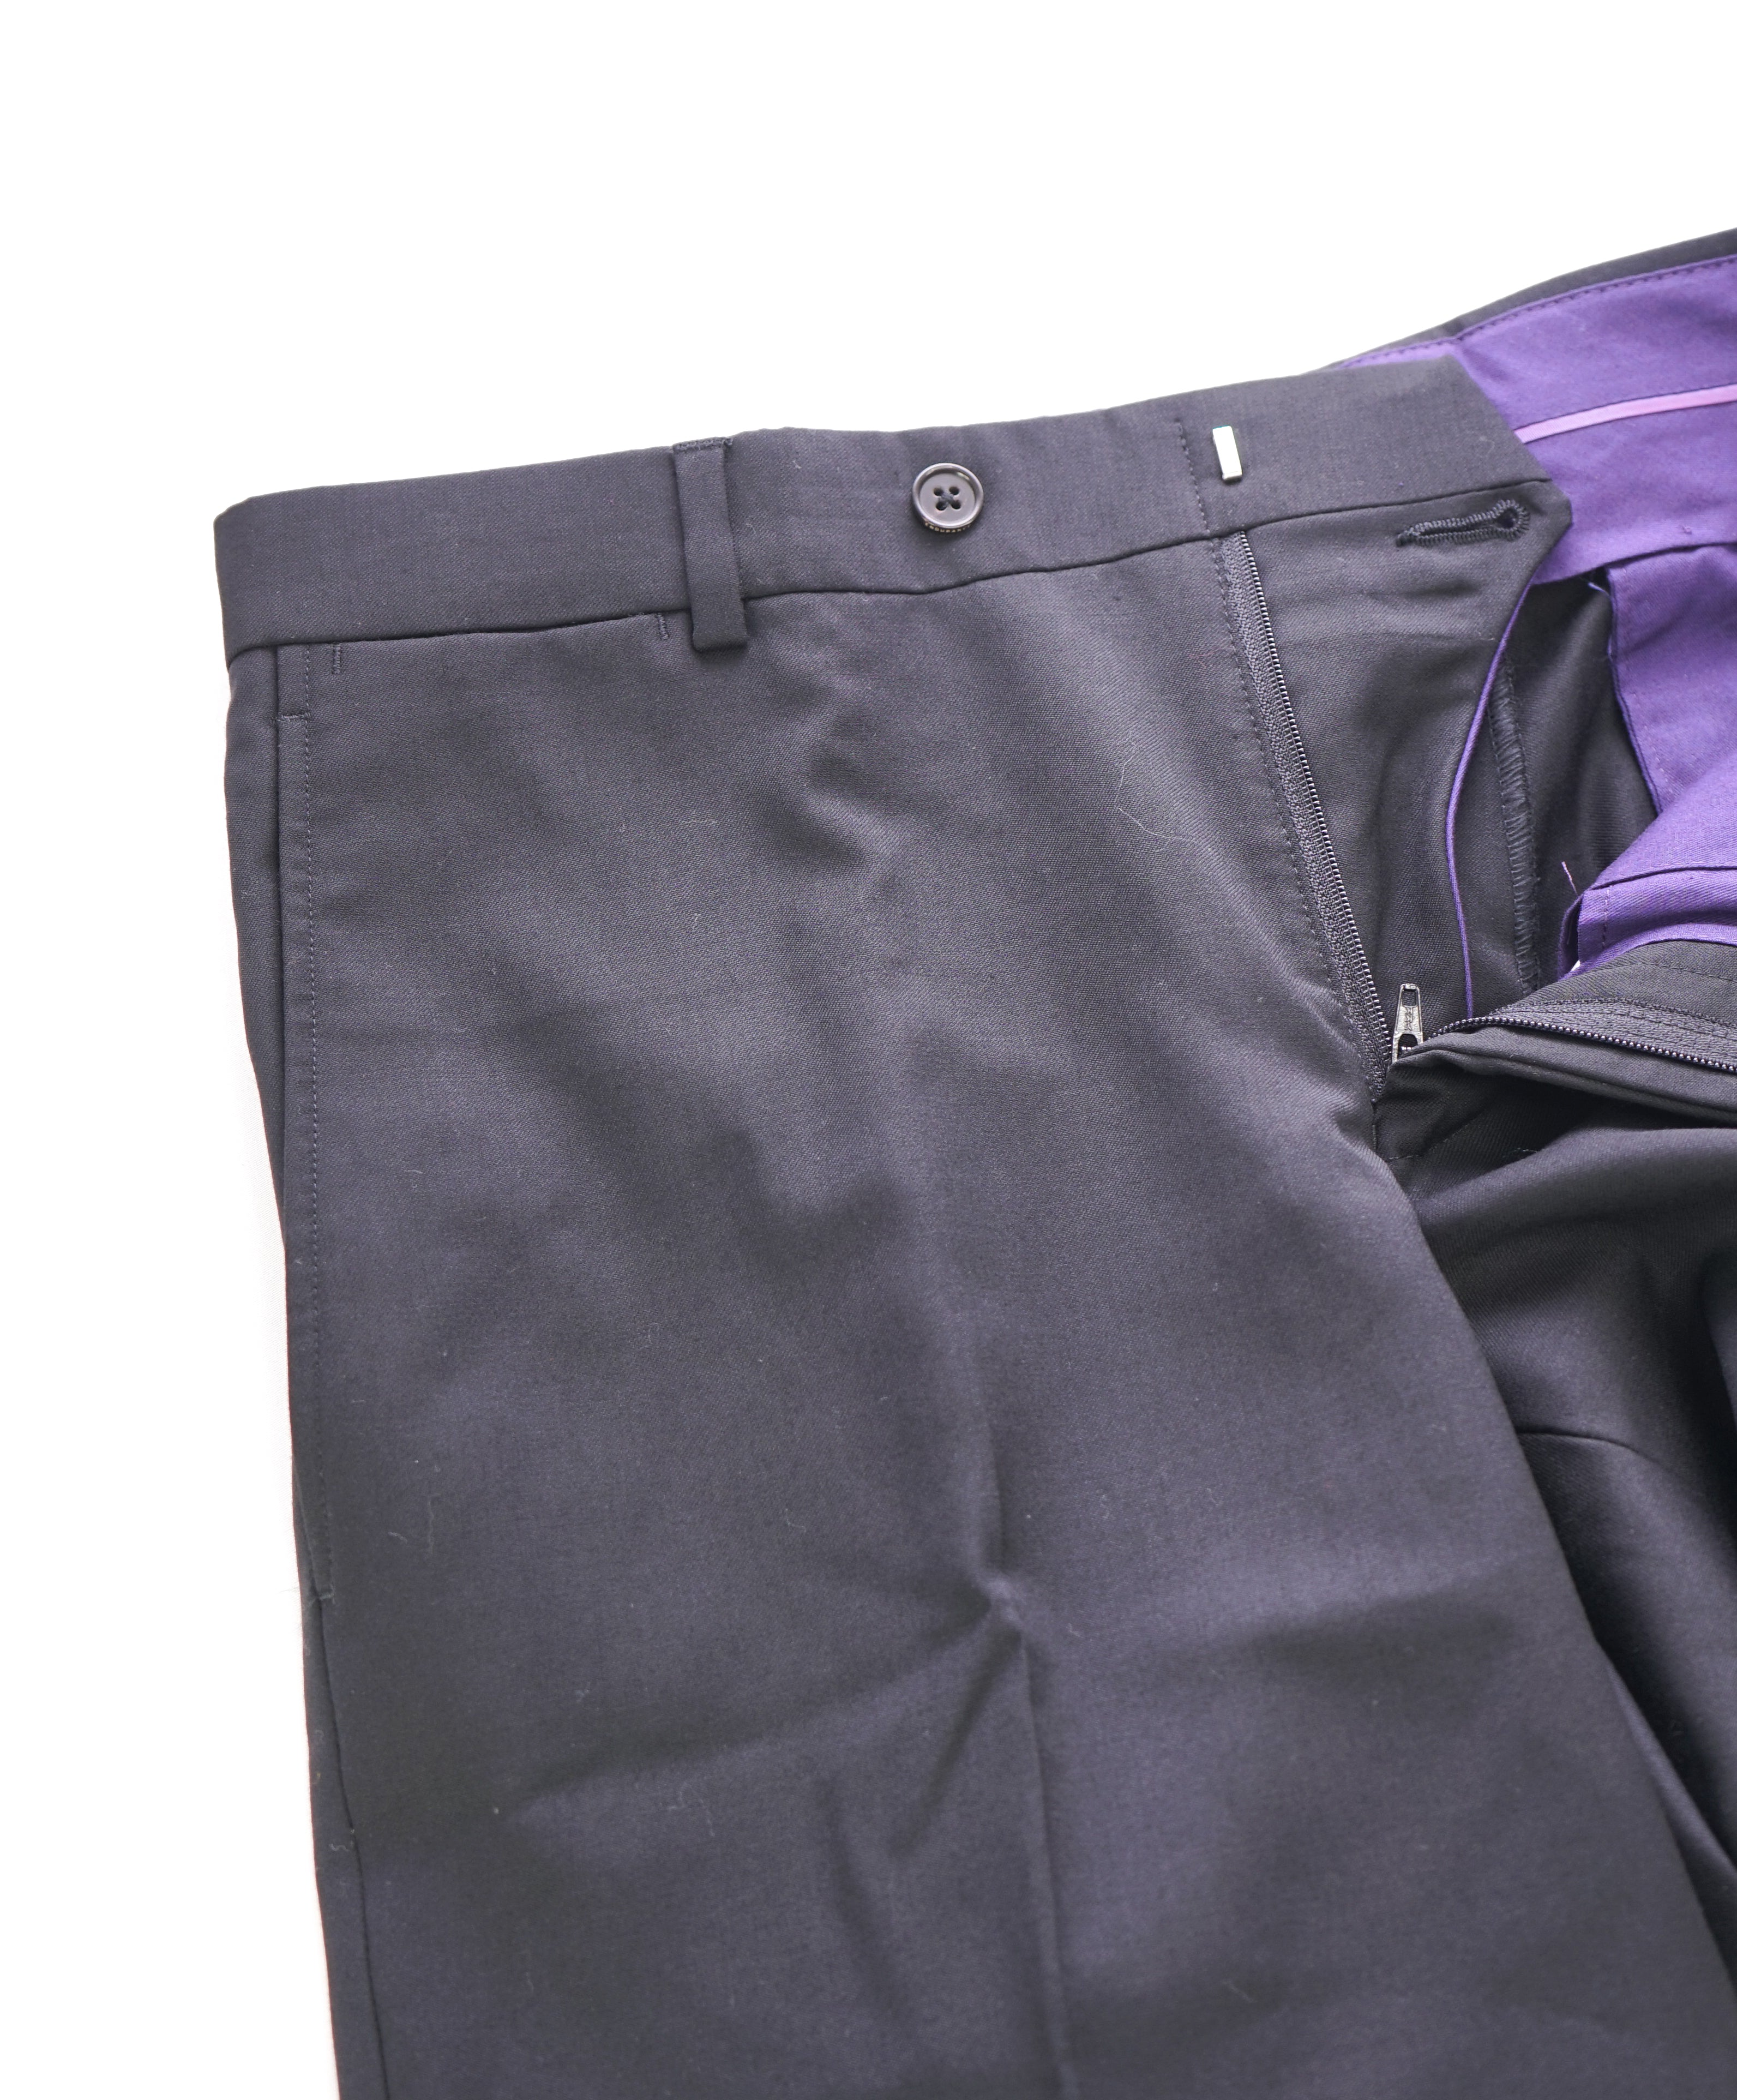 TED BAKER - Solid Black Wool Flat Front Dress Pants - 33W